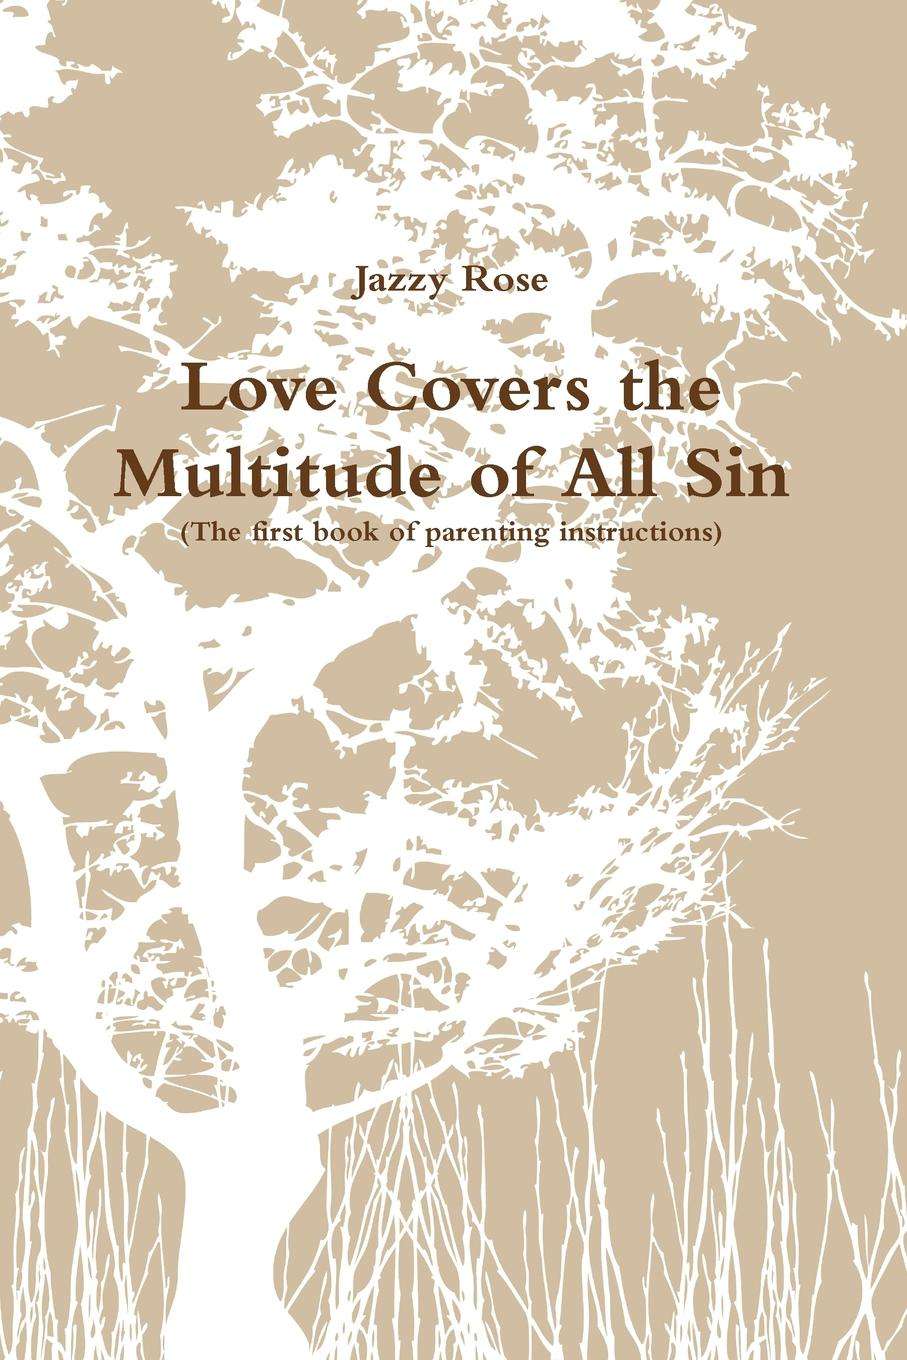 Jazzy Rose Love Covers the Multitude of All Sin (First book of parenting instructions) a multitude of sins